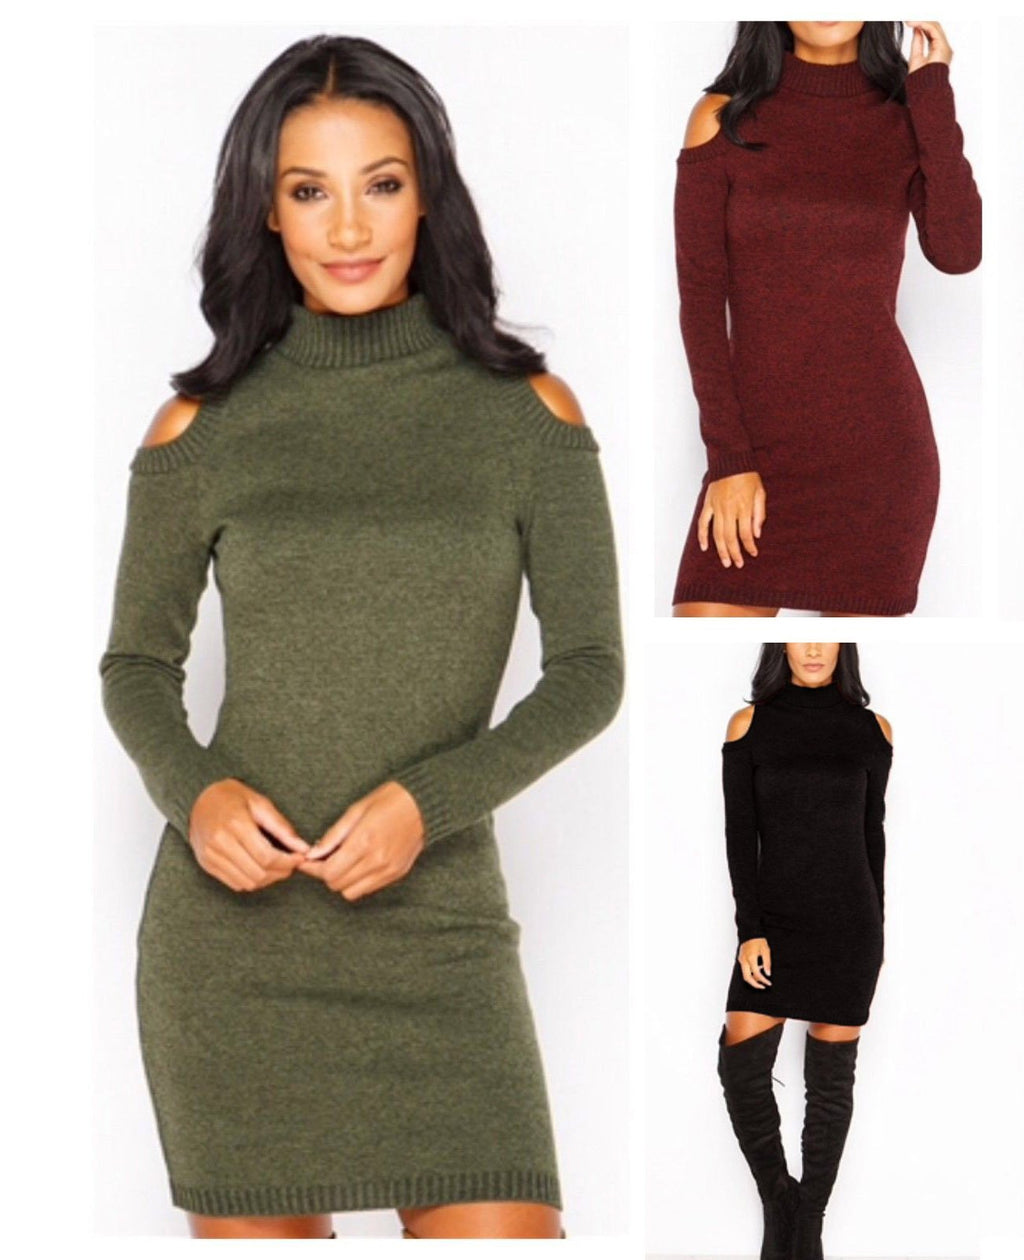 A/W Turtle Neck Cold Shoulder Sweater Dress